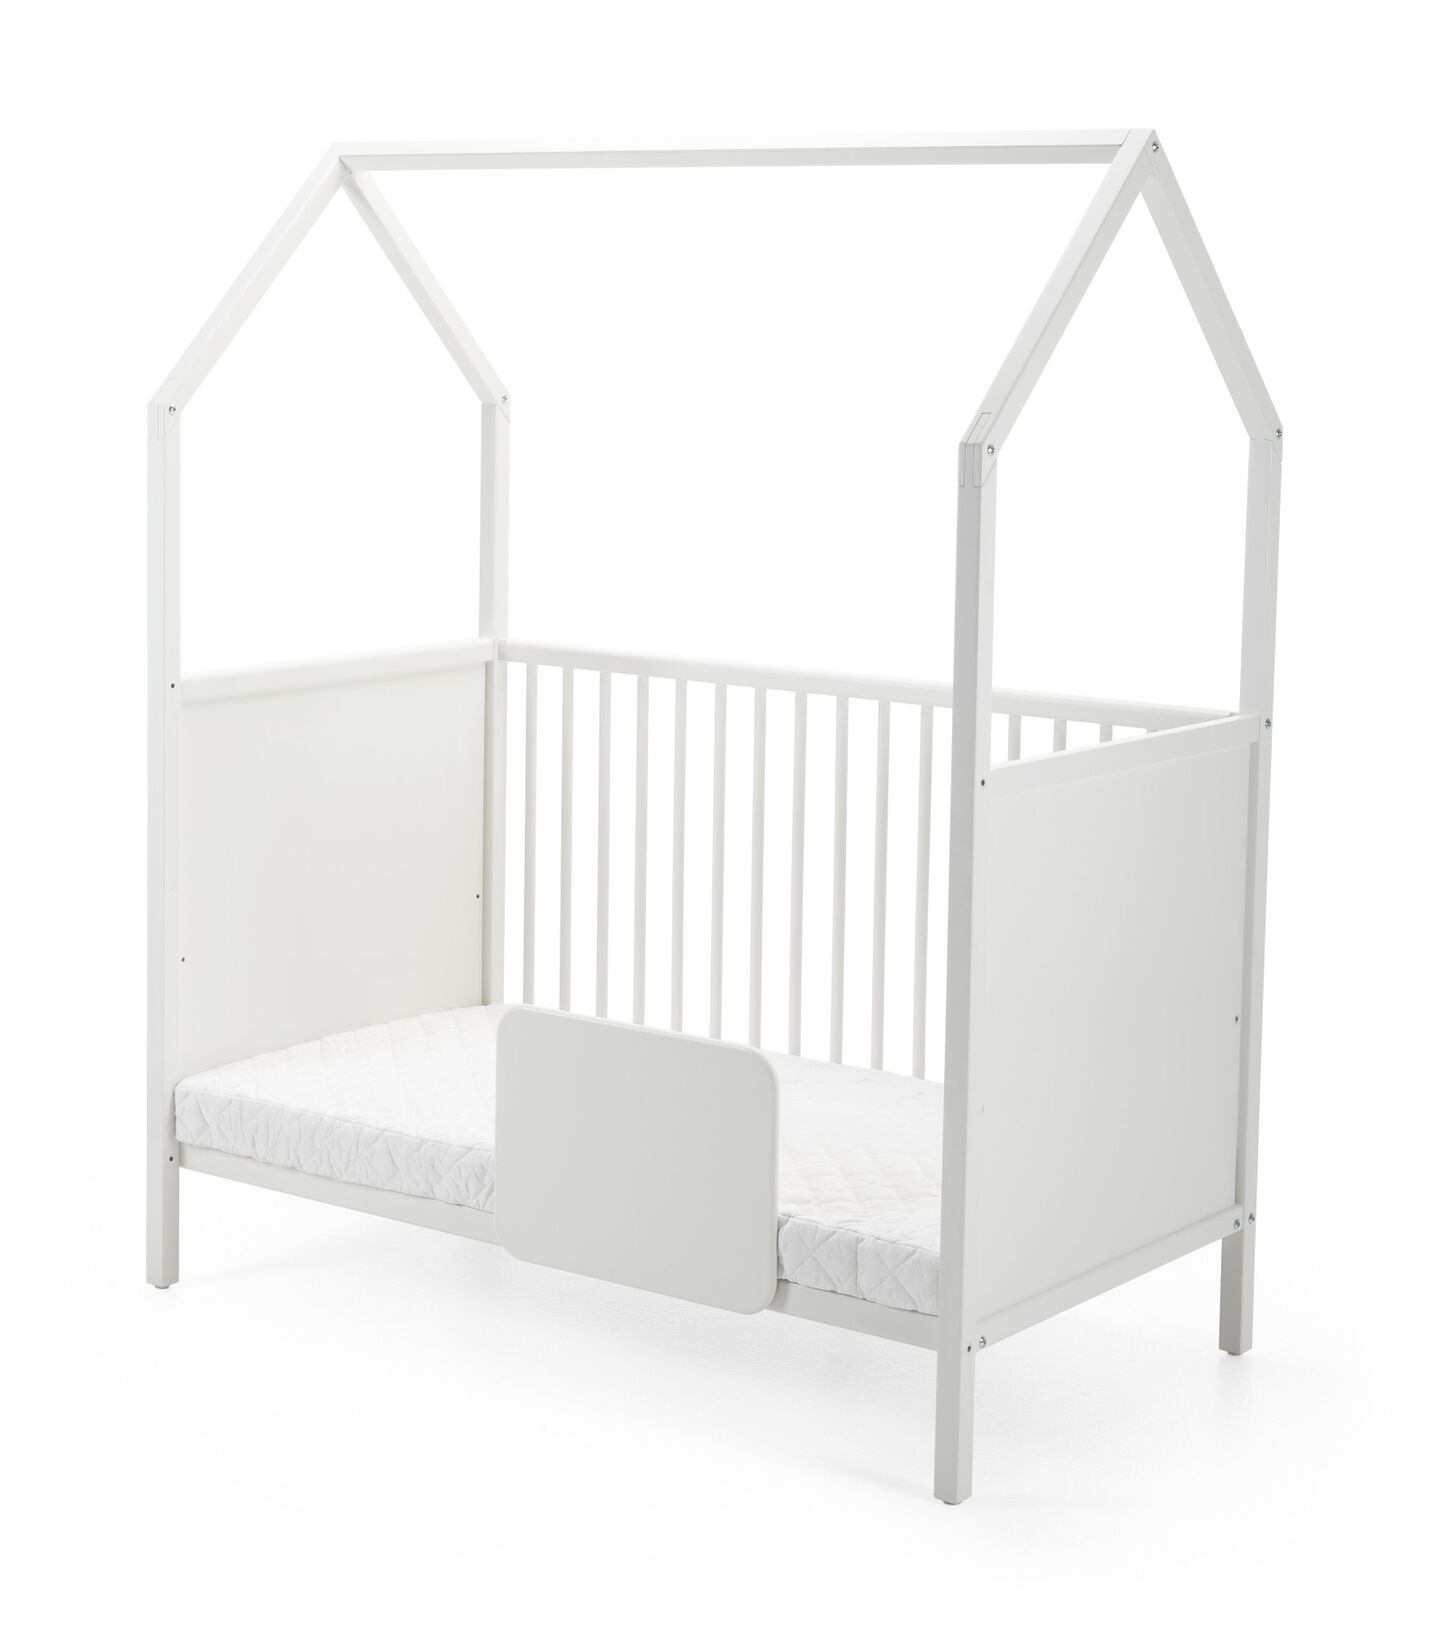 Stokke® Home™ Bed, White, with Bed Guard.